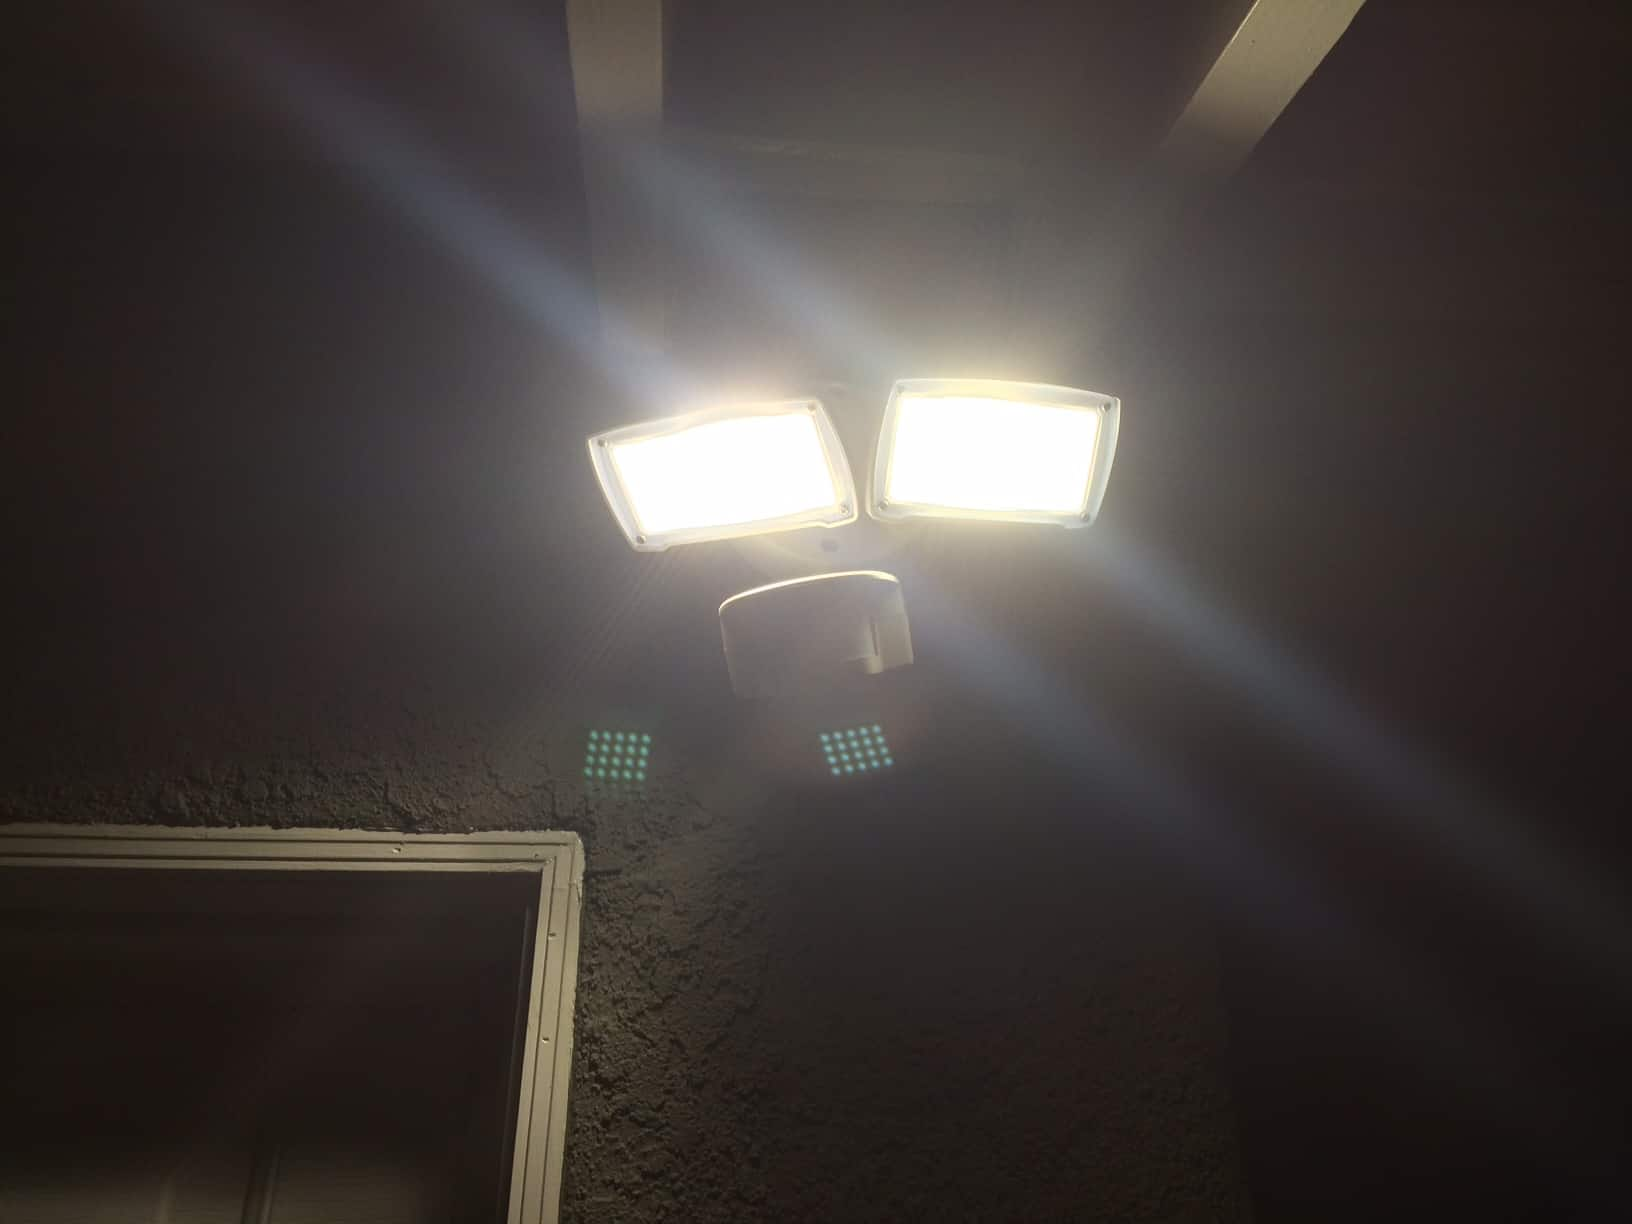 Best Ways To Lower Your Electric Bill Use Led Light Bulbs